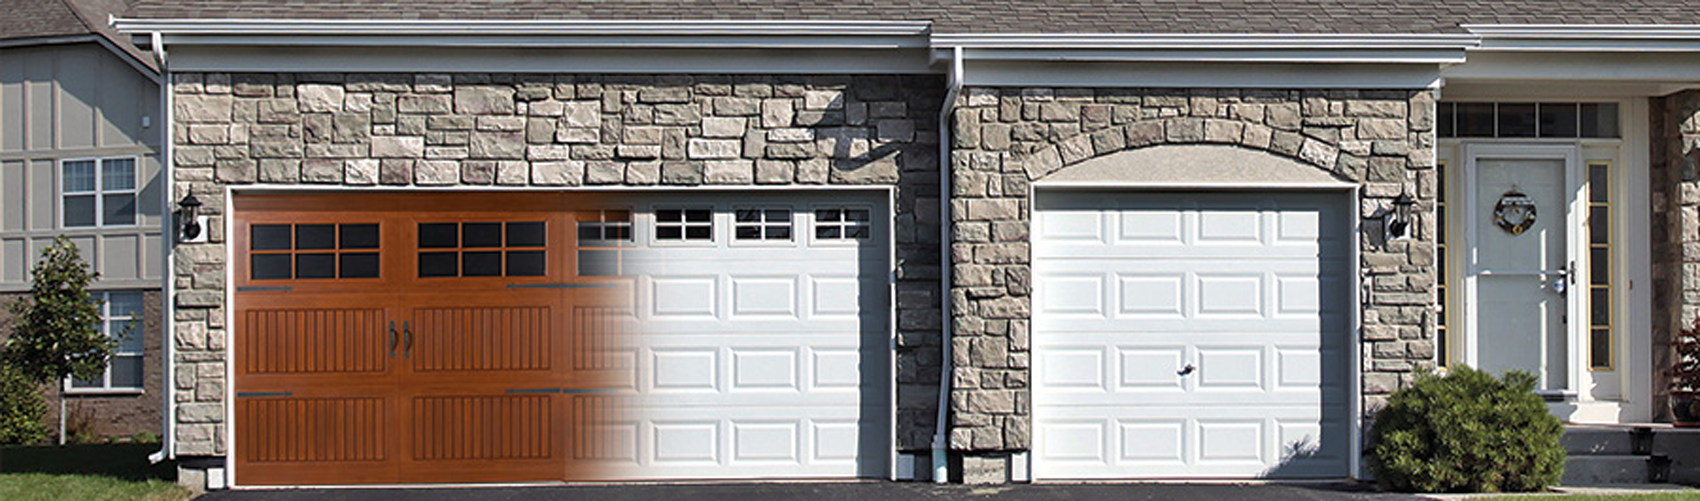 parts garage enlarge catalog door doors wholesale click to stick product stuff info and denco supplies peel